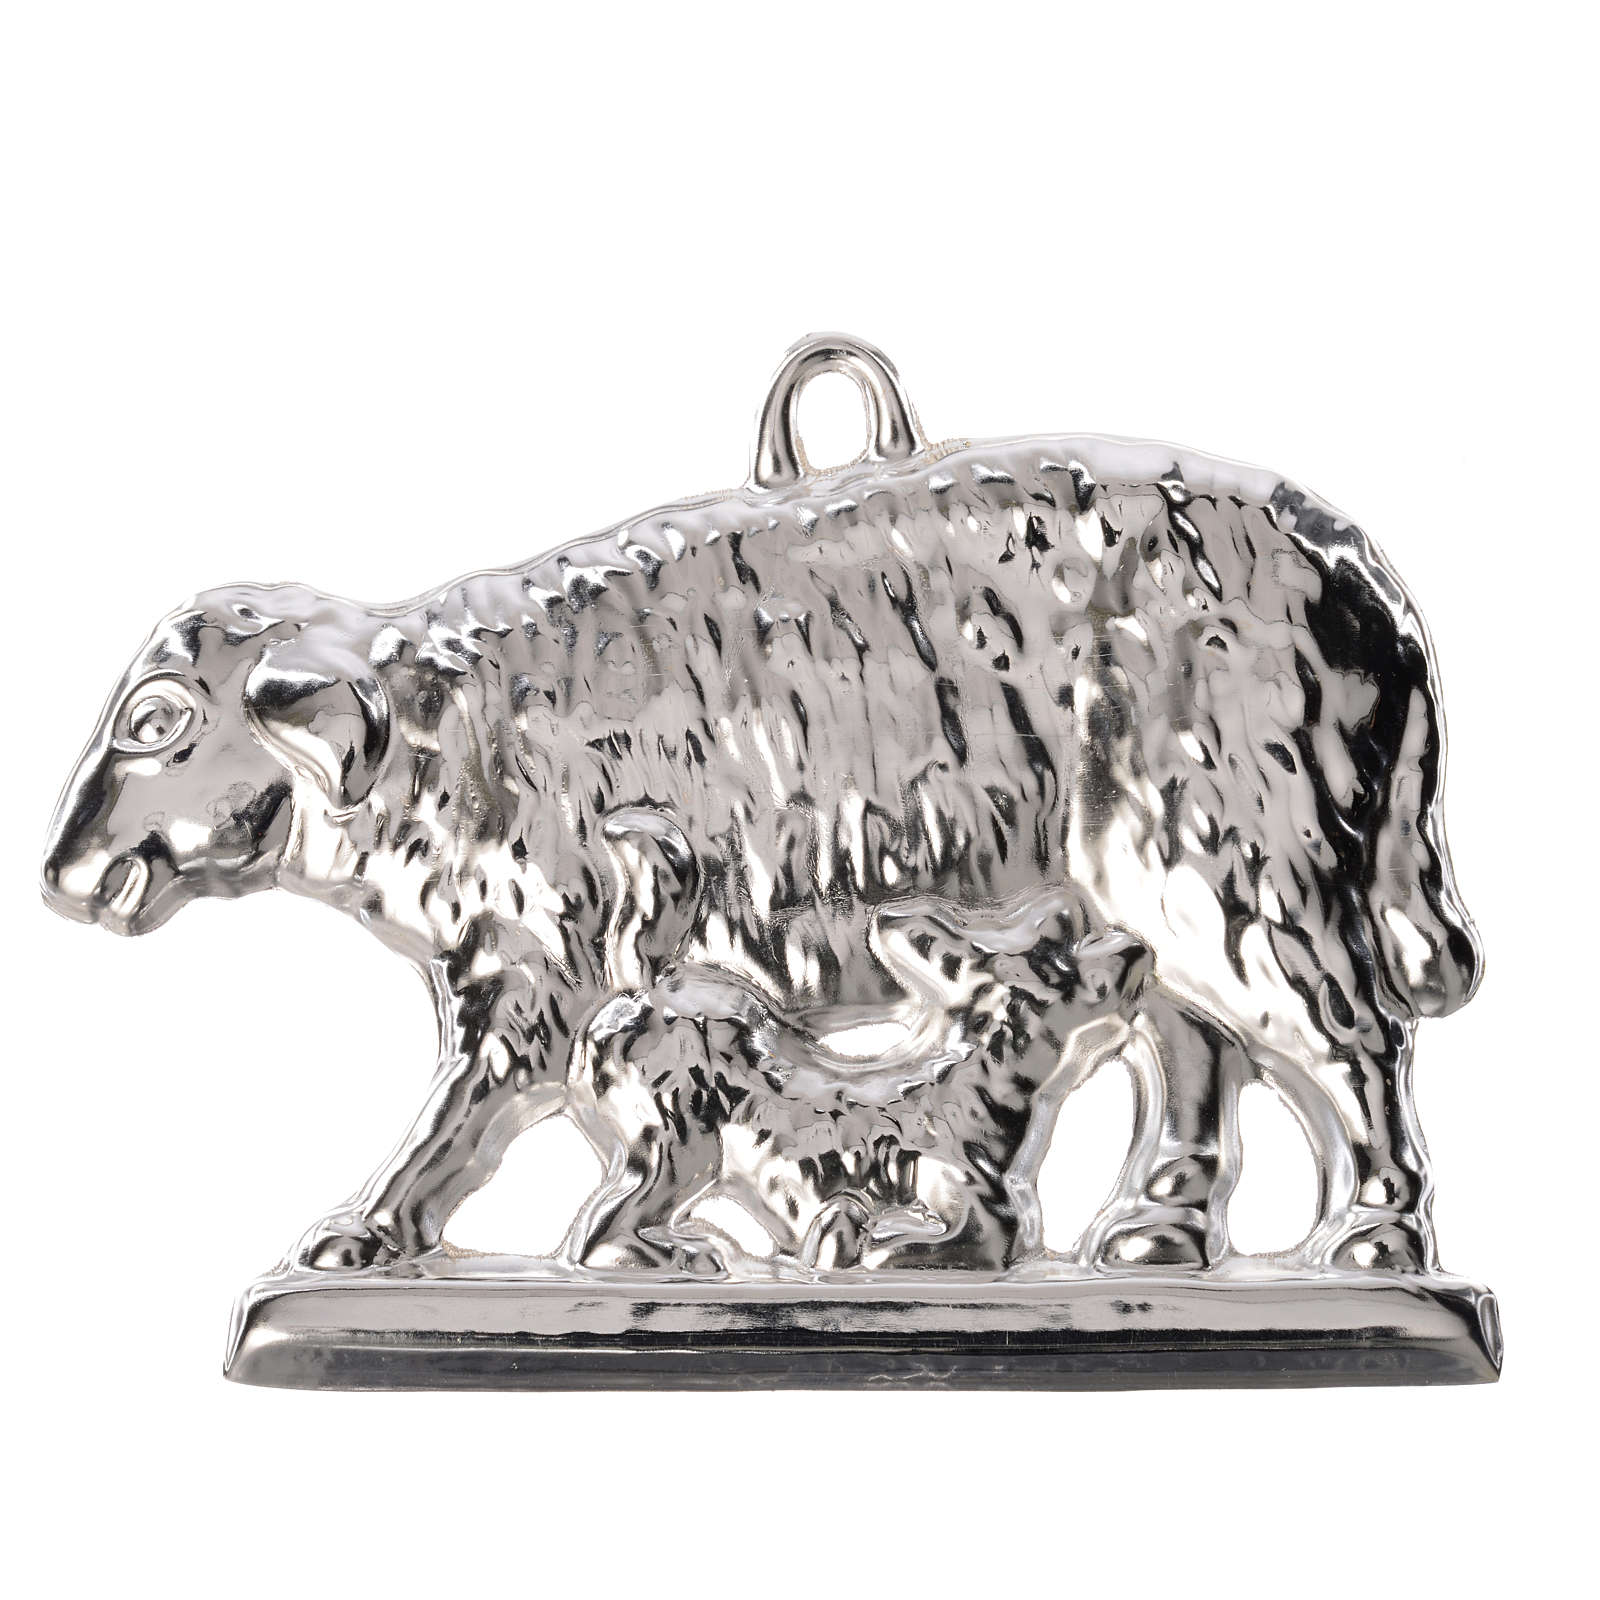 Ex-voto, sheep and lamb in sterling silver or metal, 11 x 7cm 3